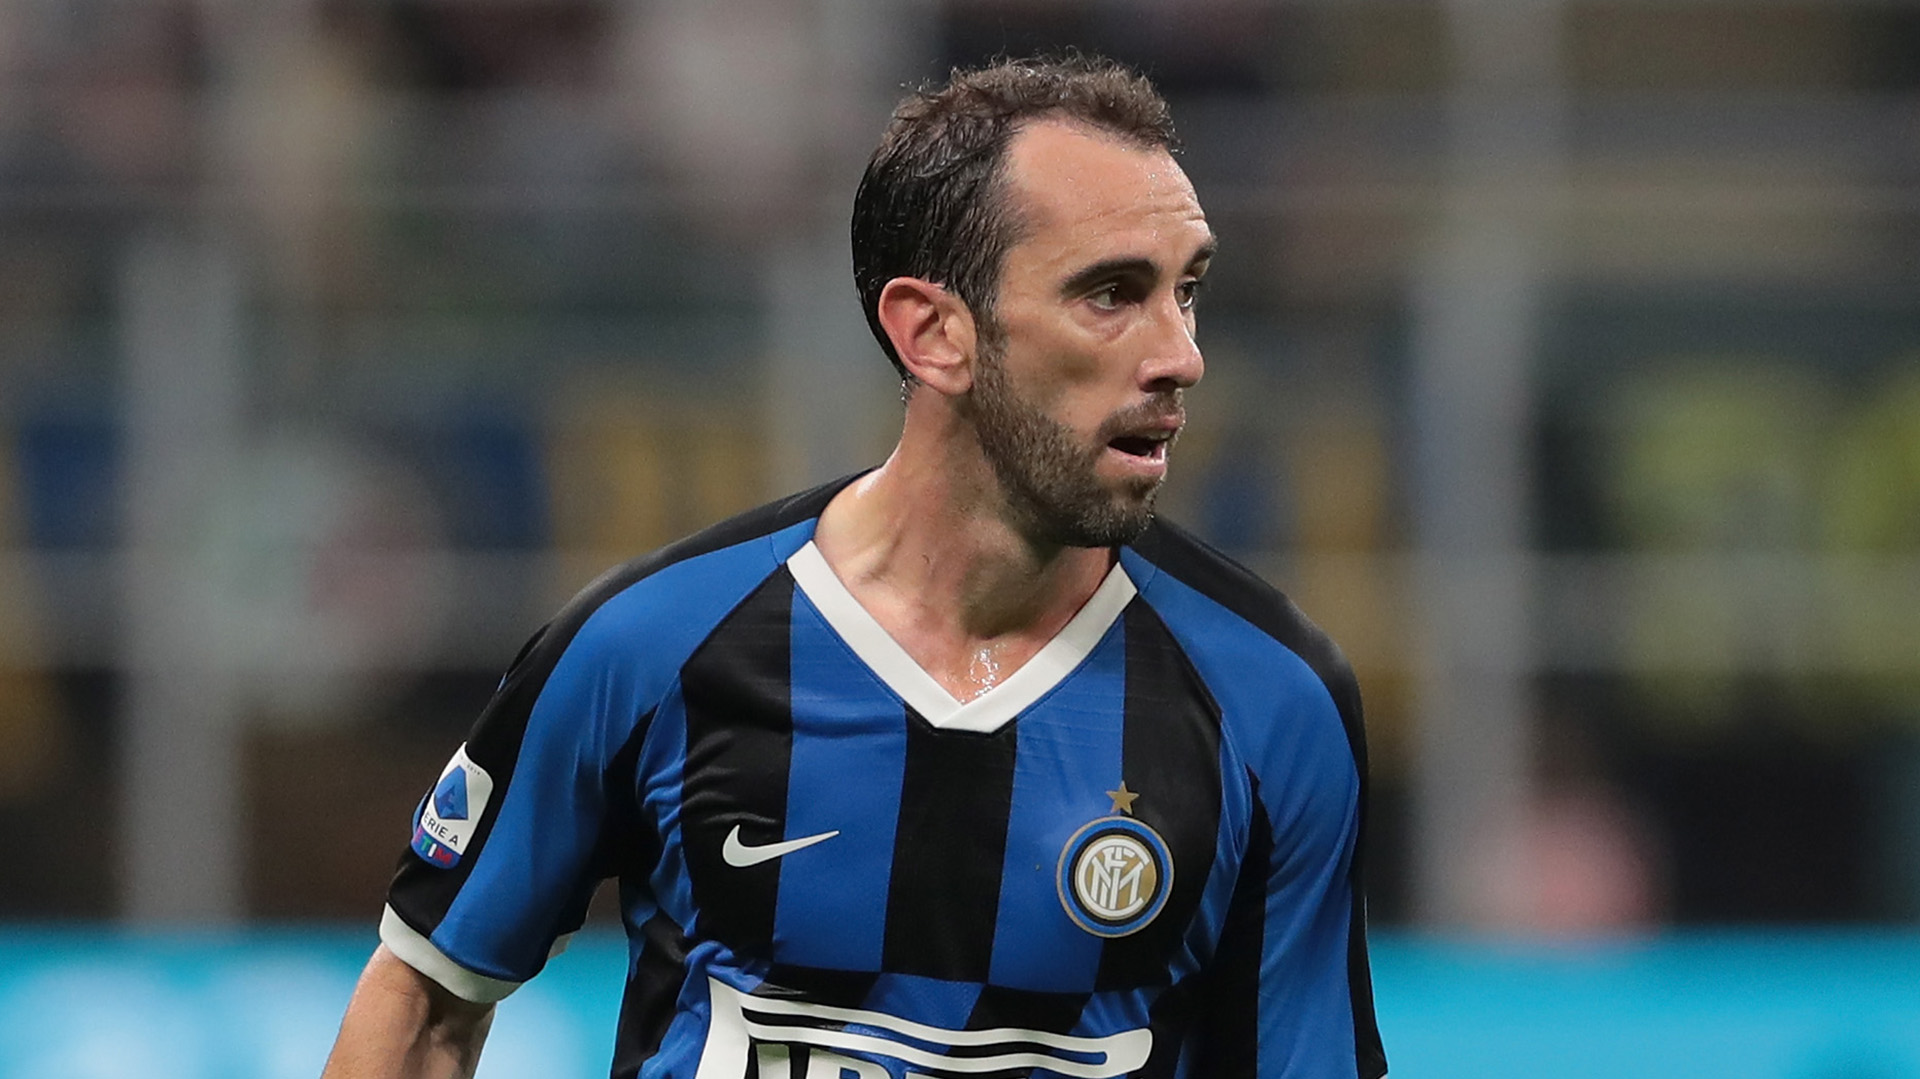 'We were exposed until the last moment' - Godin criticises Serie A response to coronavirus